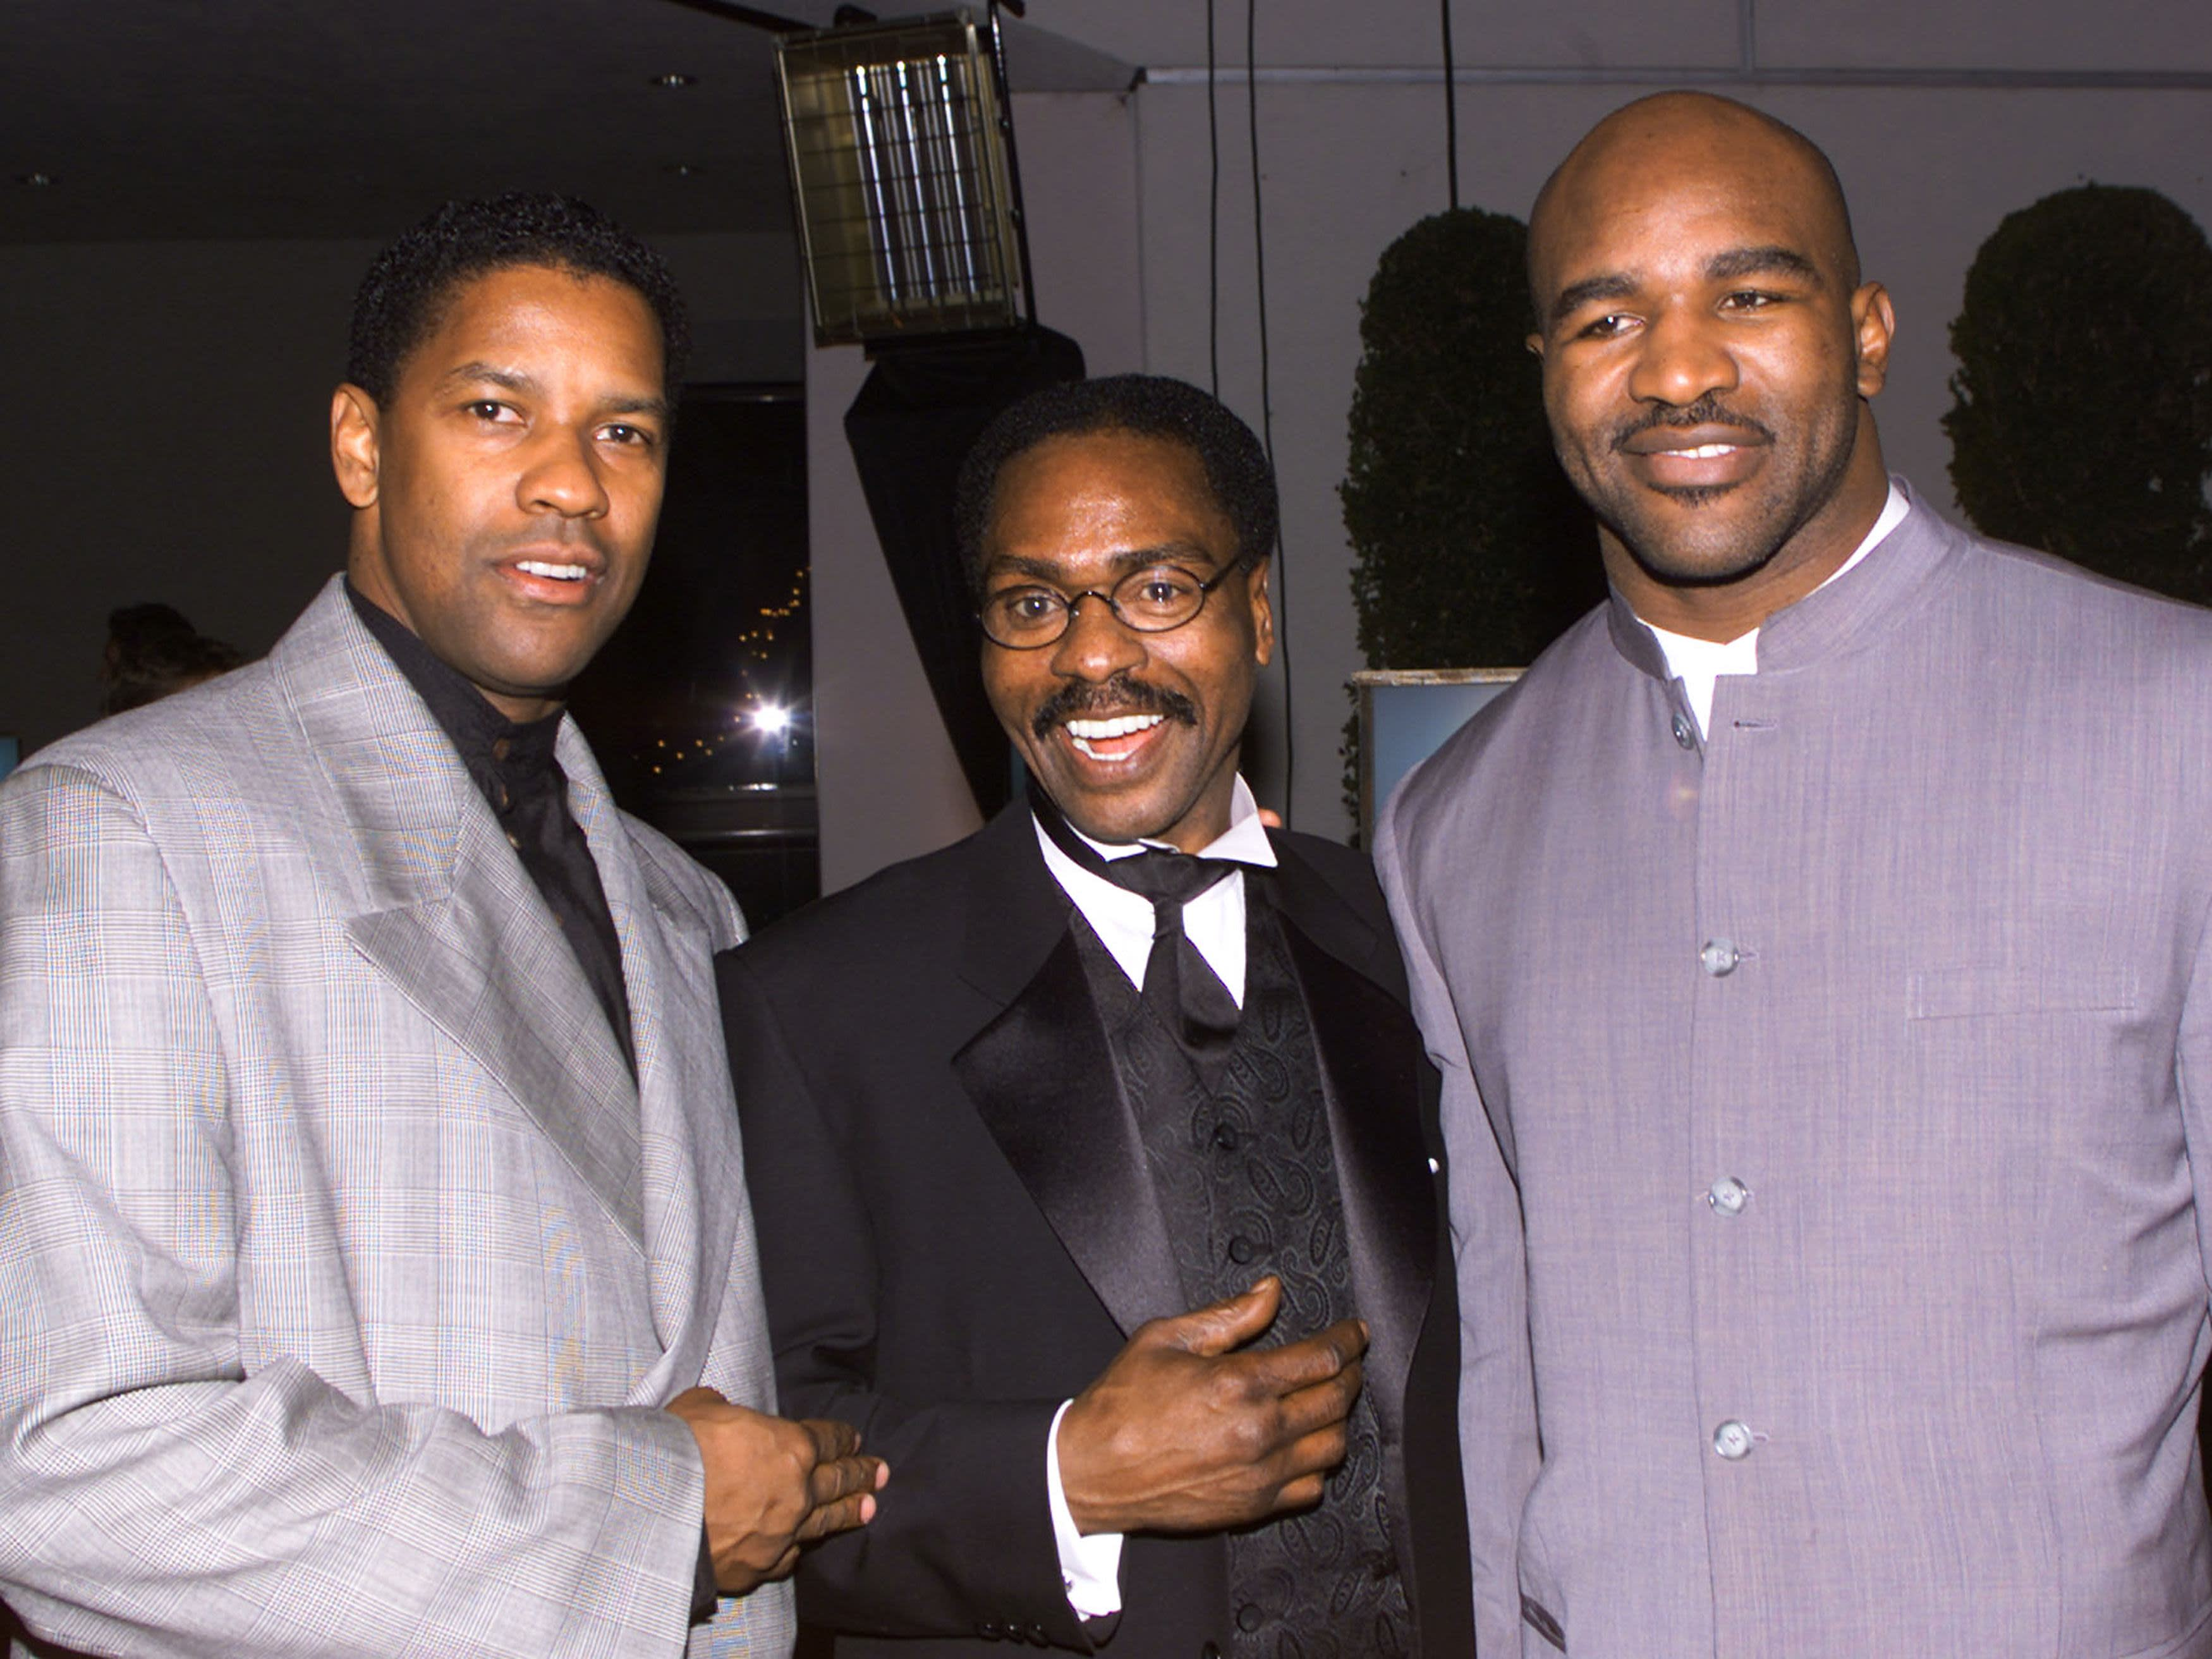 rubin hurricane carter Wrongly convicted of murder by an all-white, famous ex-boxer became advocate for other prisoners.